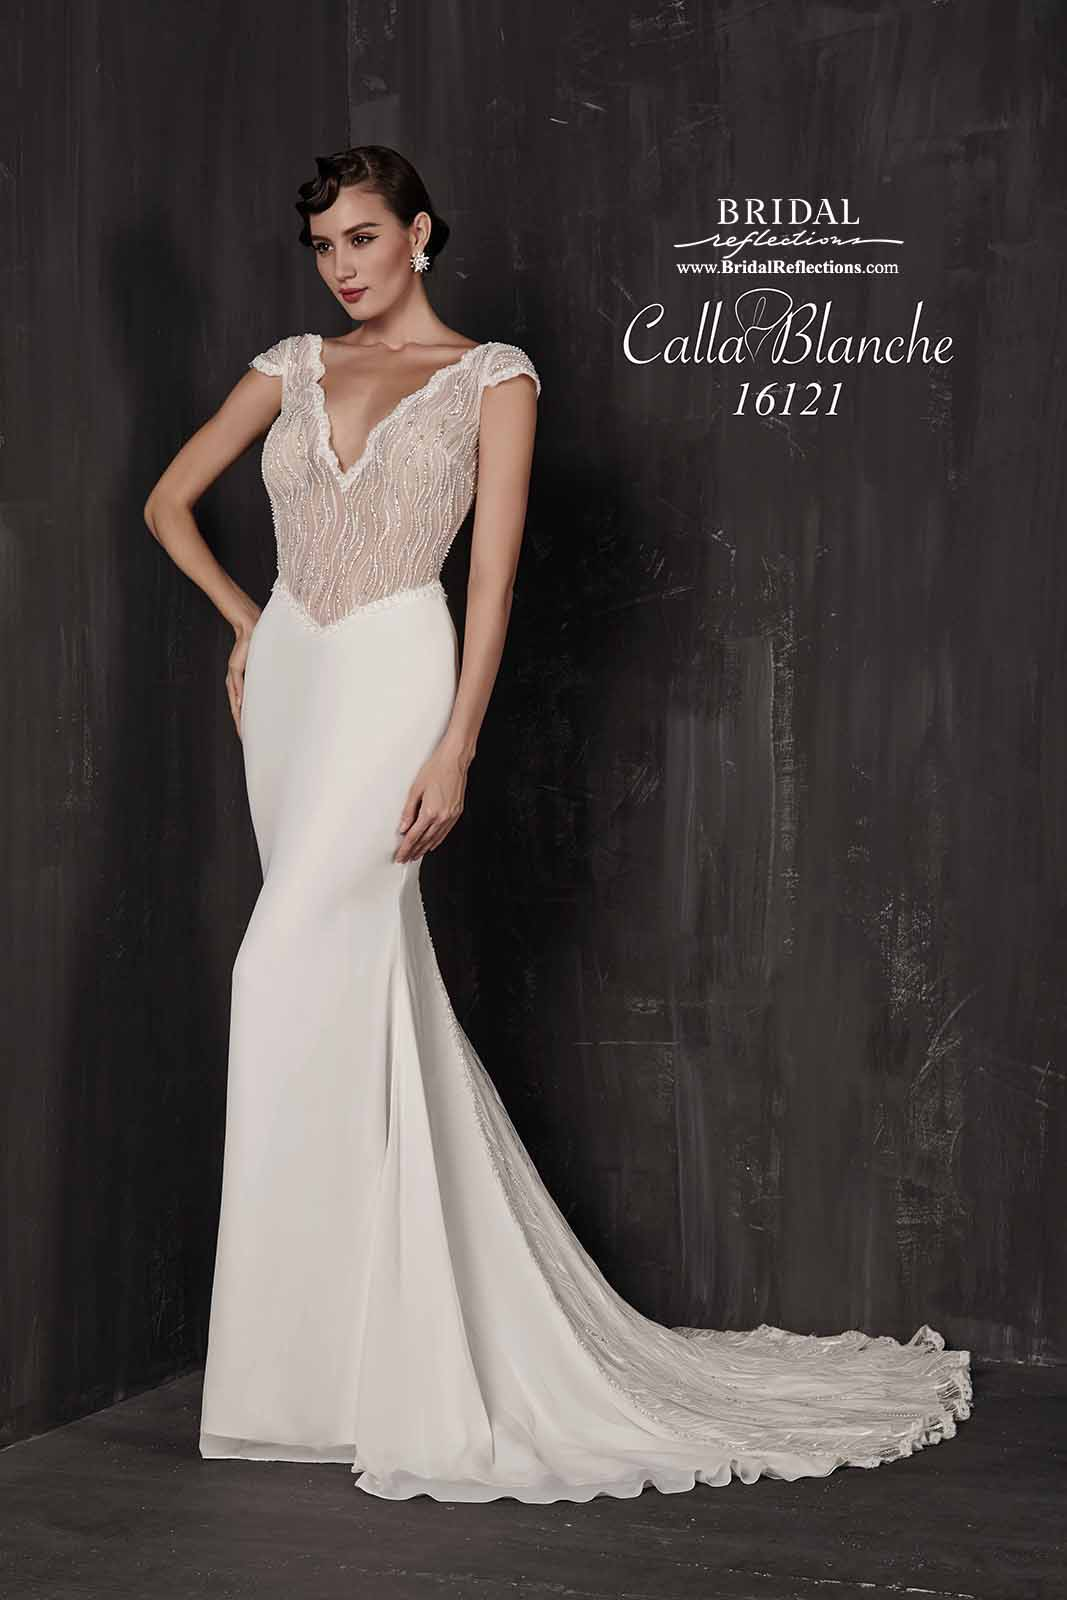 Calla Blanche Bridal Reflections